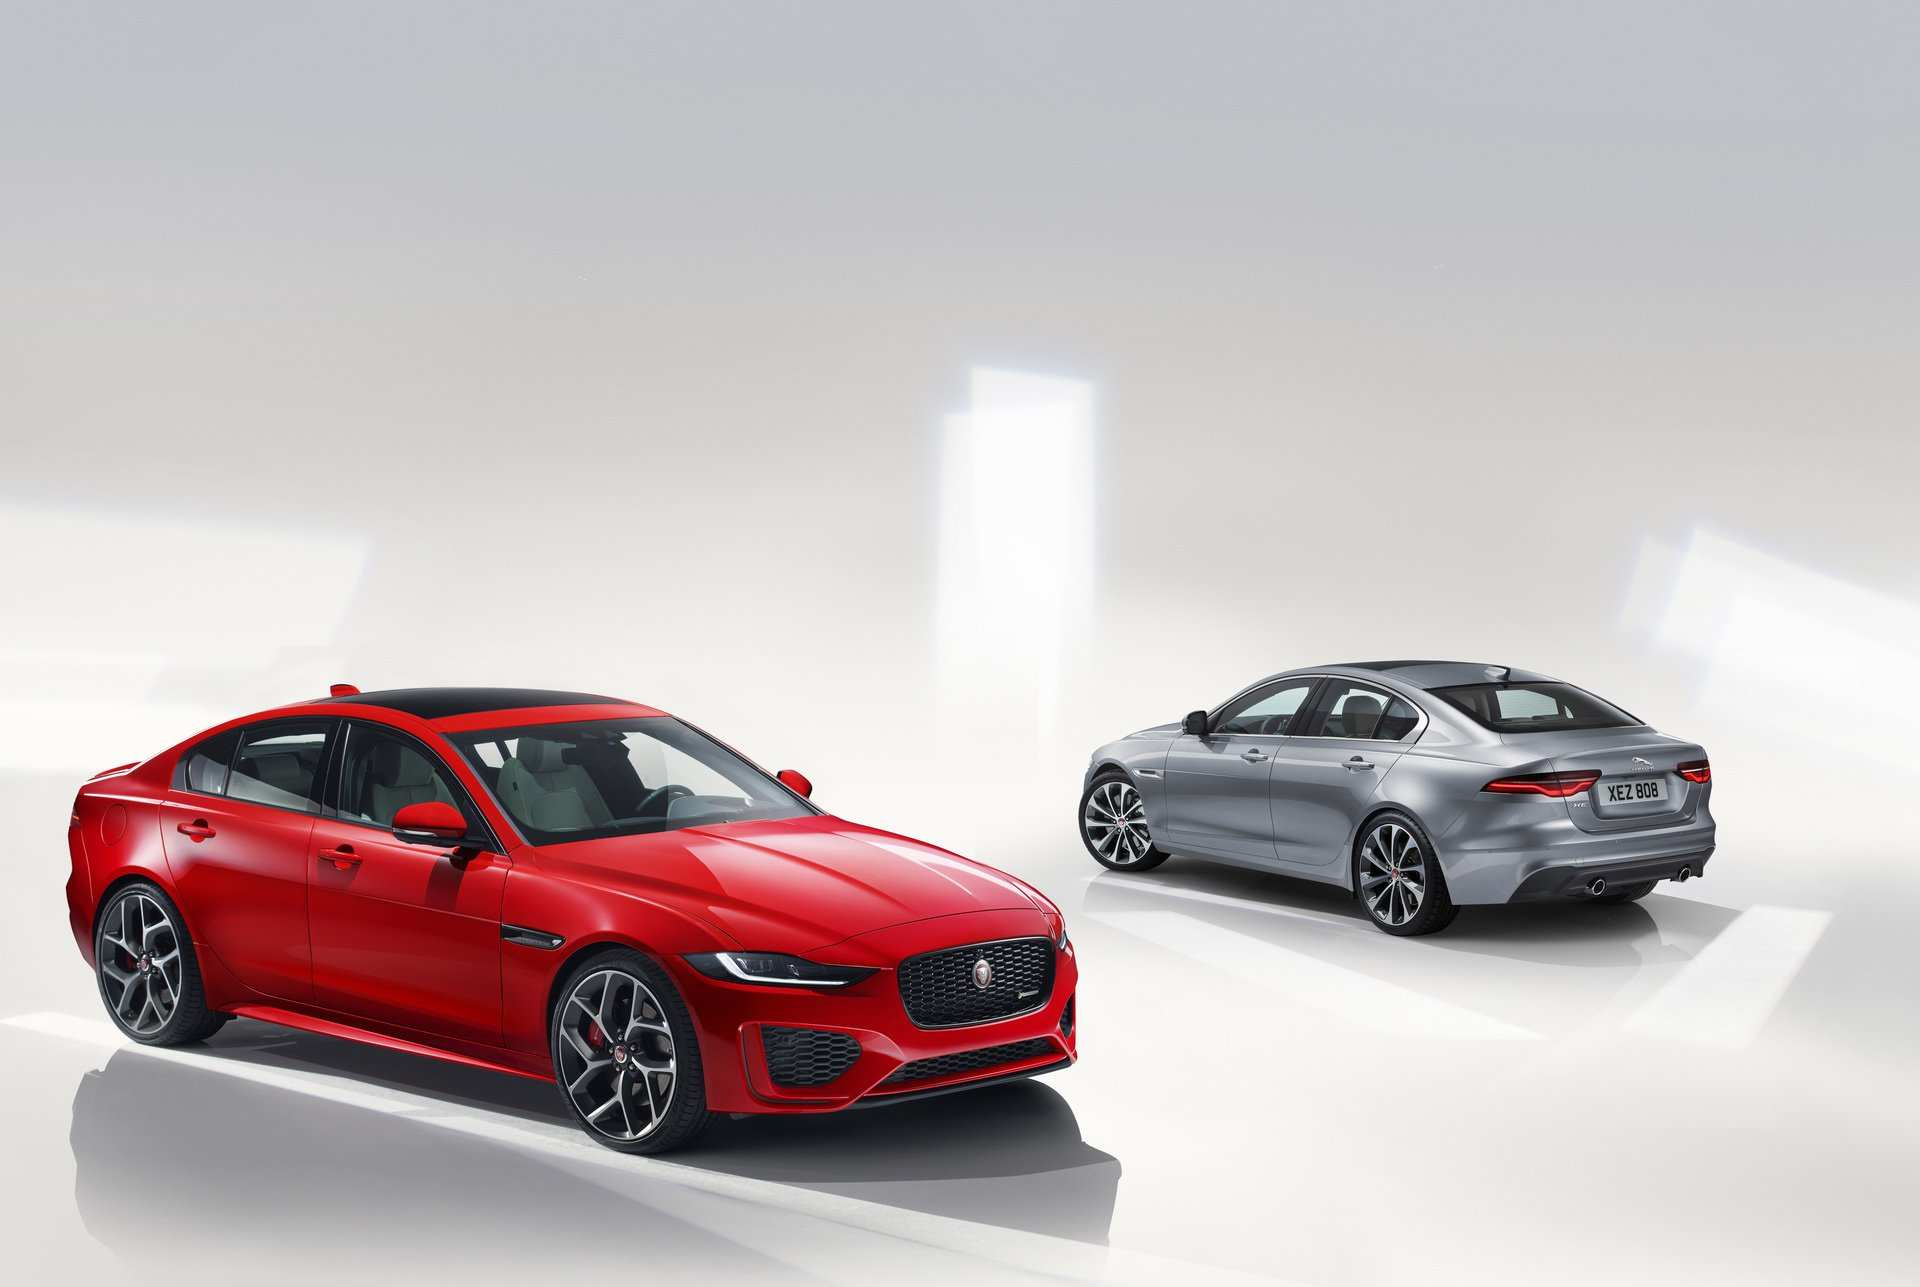 35 New Jaguar Engines 2020 Concept And Review